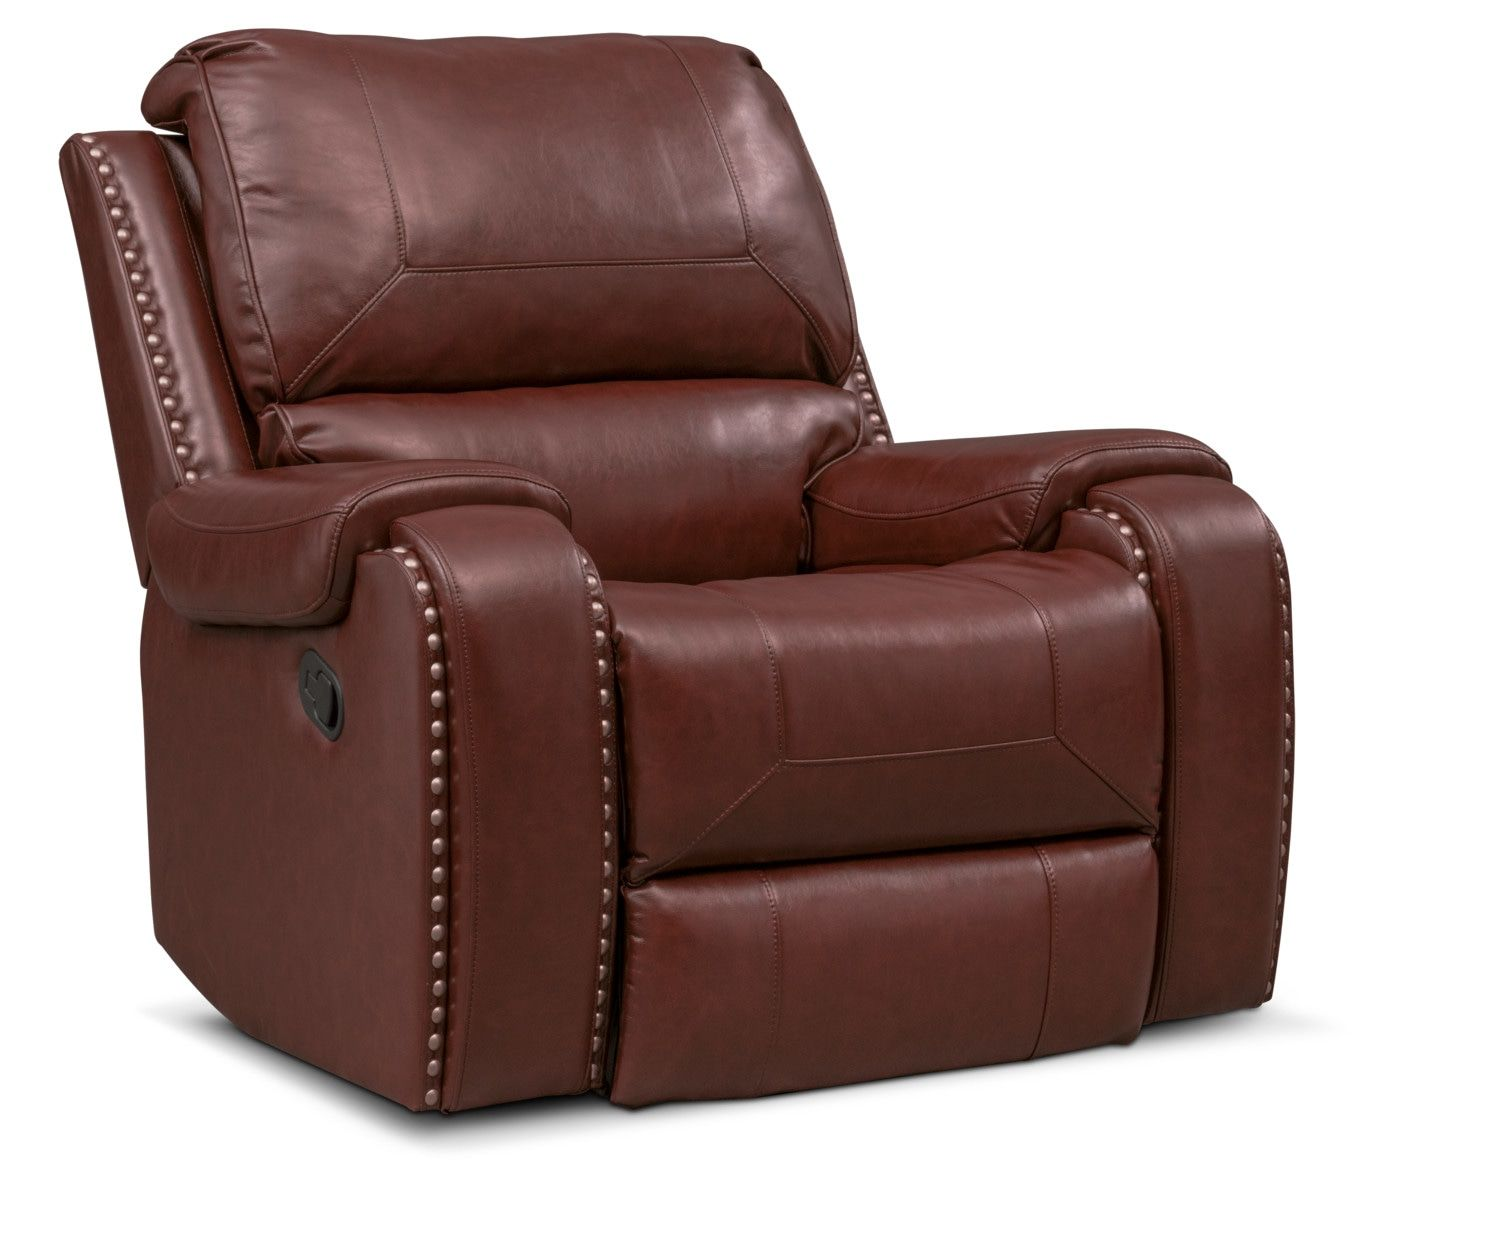 Austin Manual Recliner Brown Grey House Furniture Value City